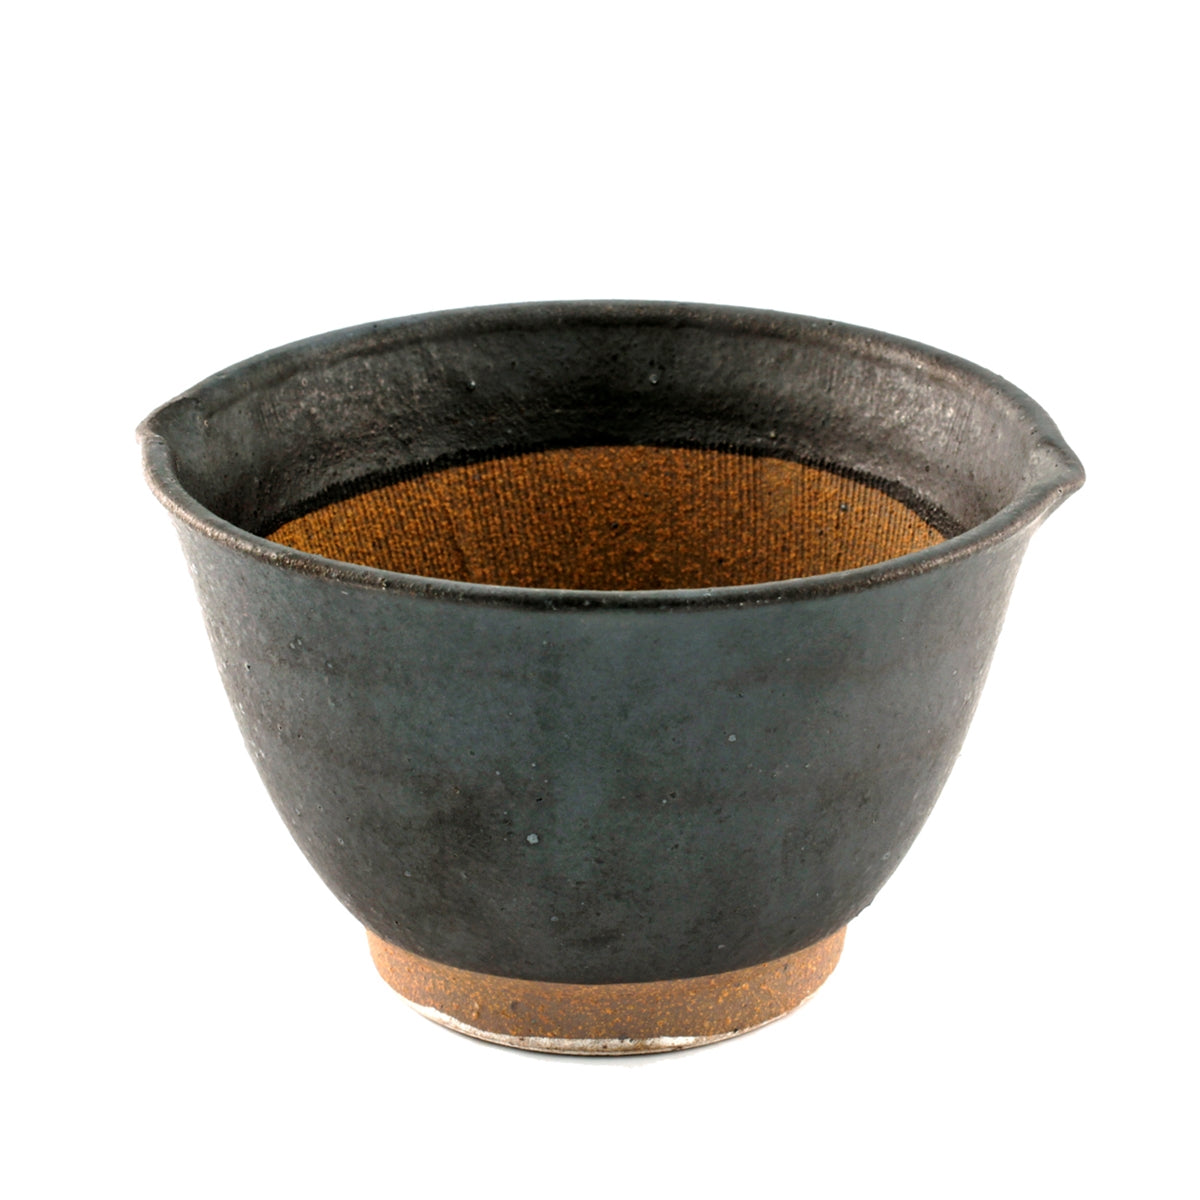 "Black Double Lipped Large Bowl with Japanese-style Mortar (Suribachi) 31 fl oz / 6.02"" dia"